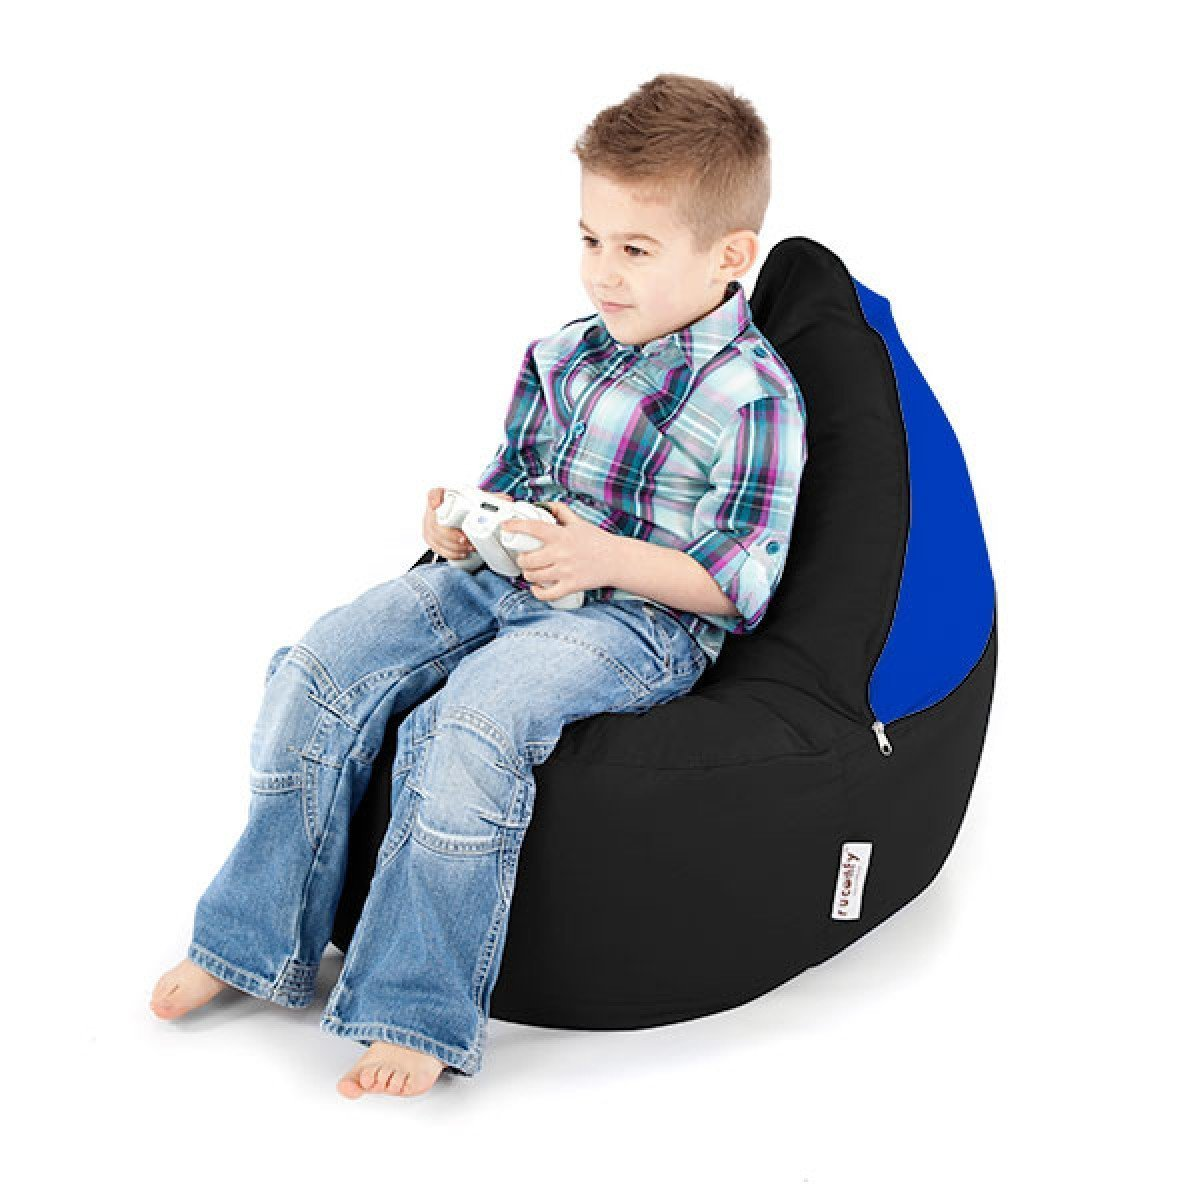 Children's Gaming Chairs Gaming Chairs For Kids Home Furniture Design